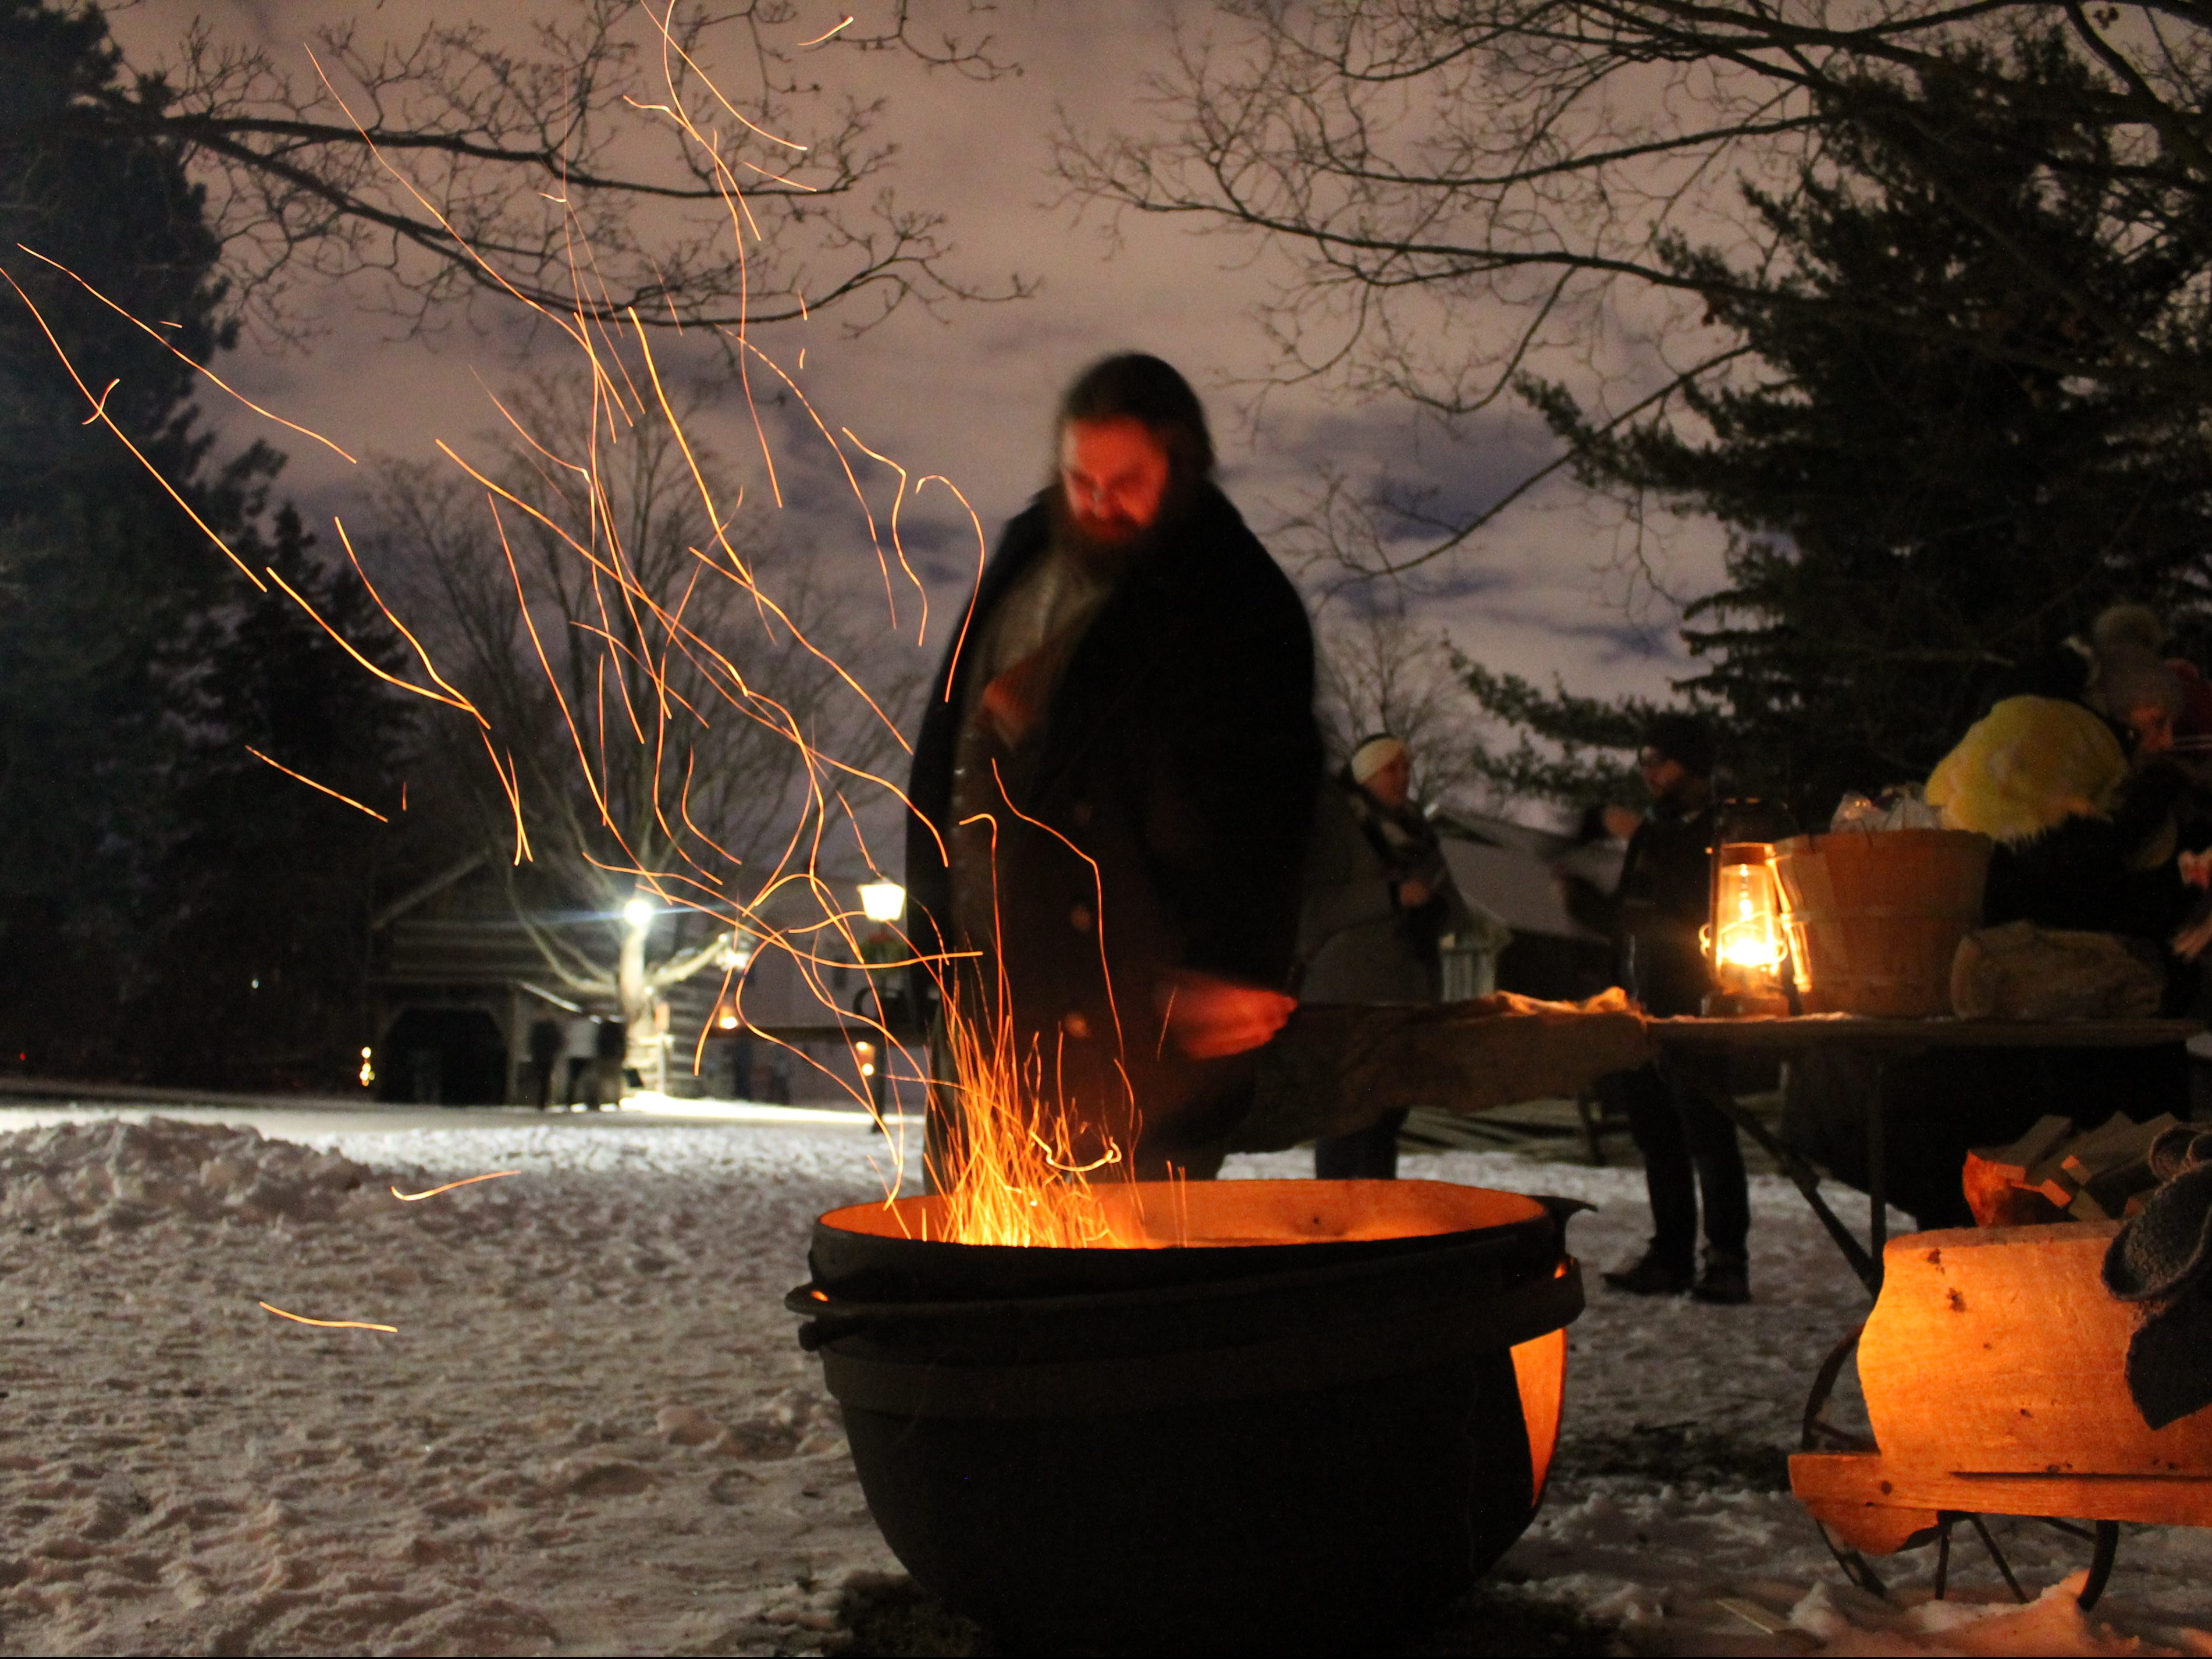 A fire pit for roasting chestnuts